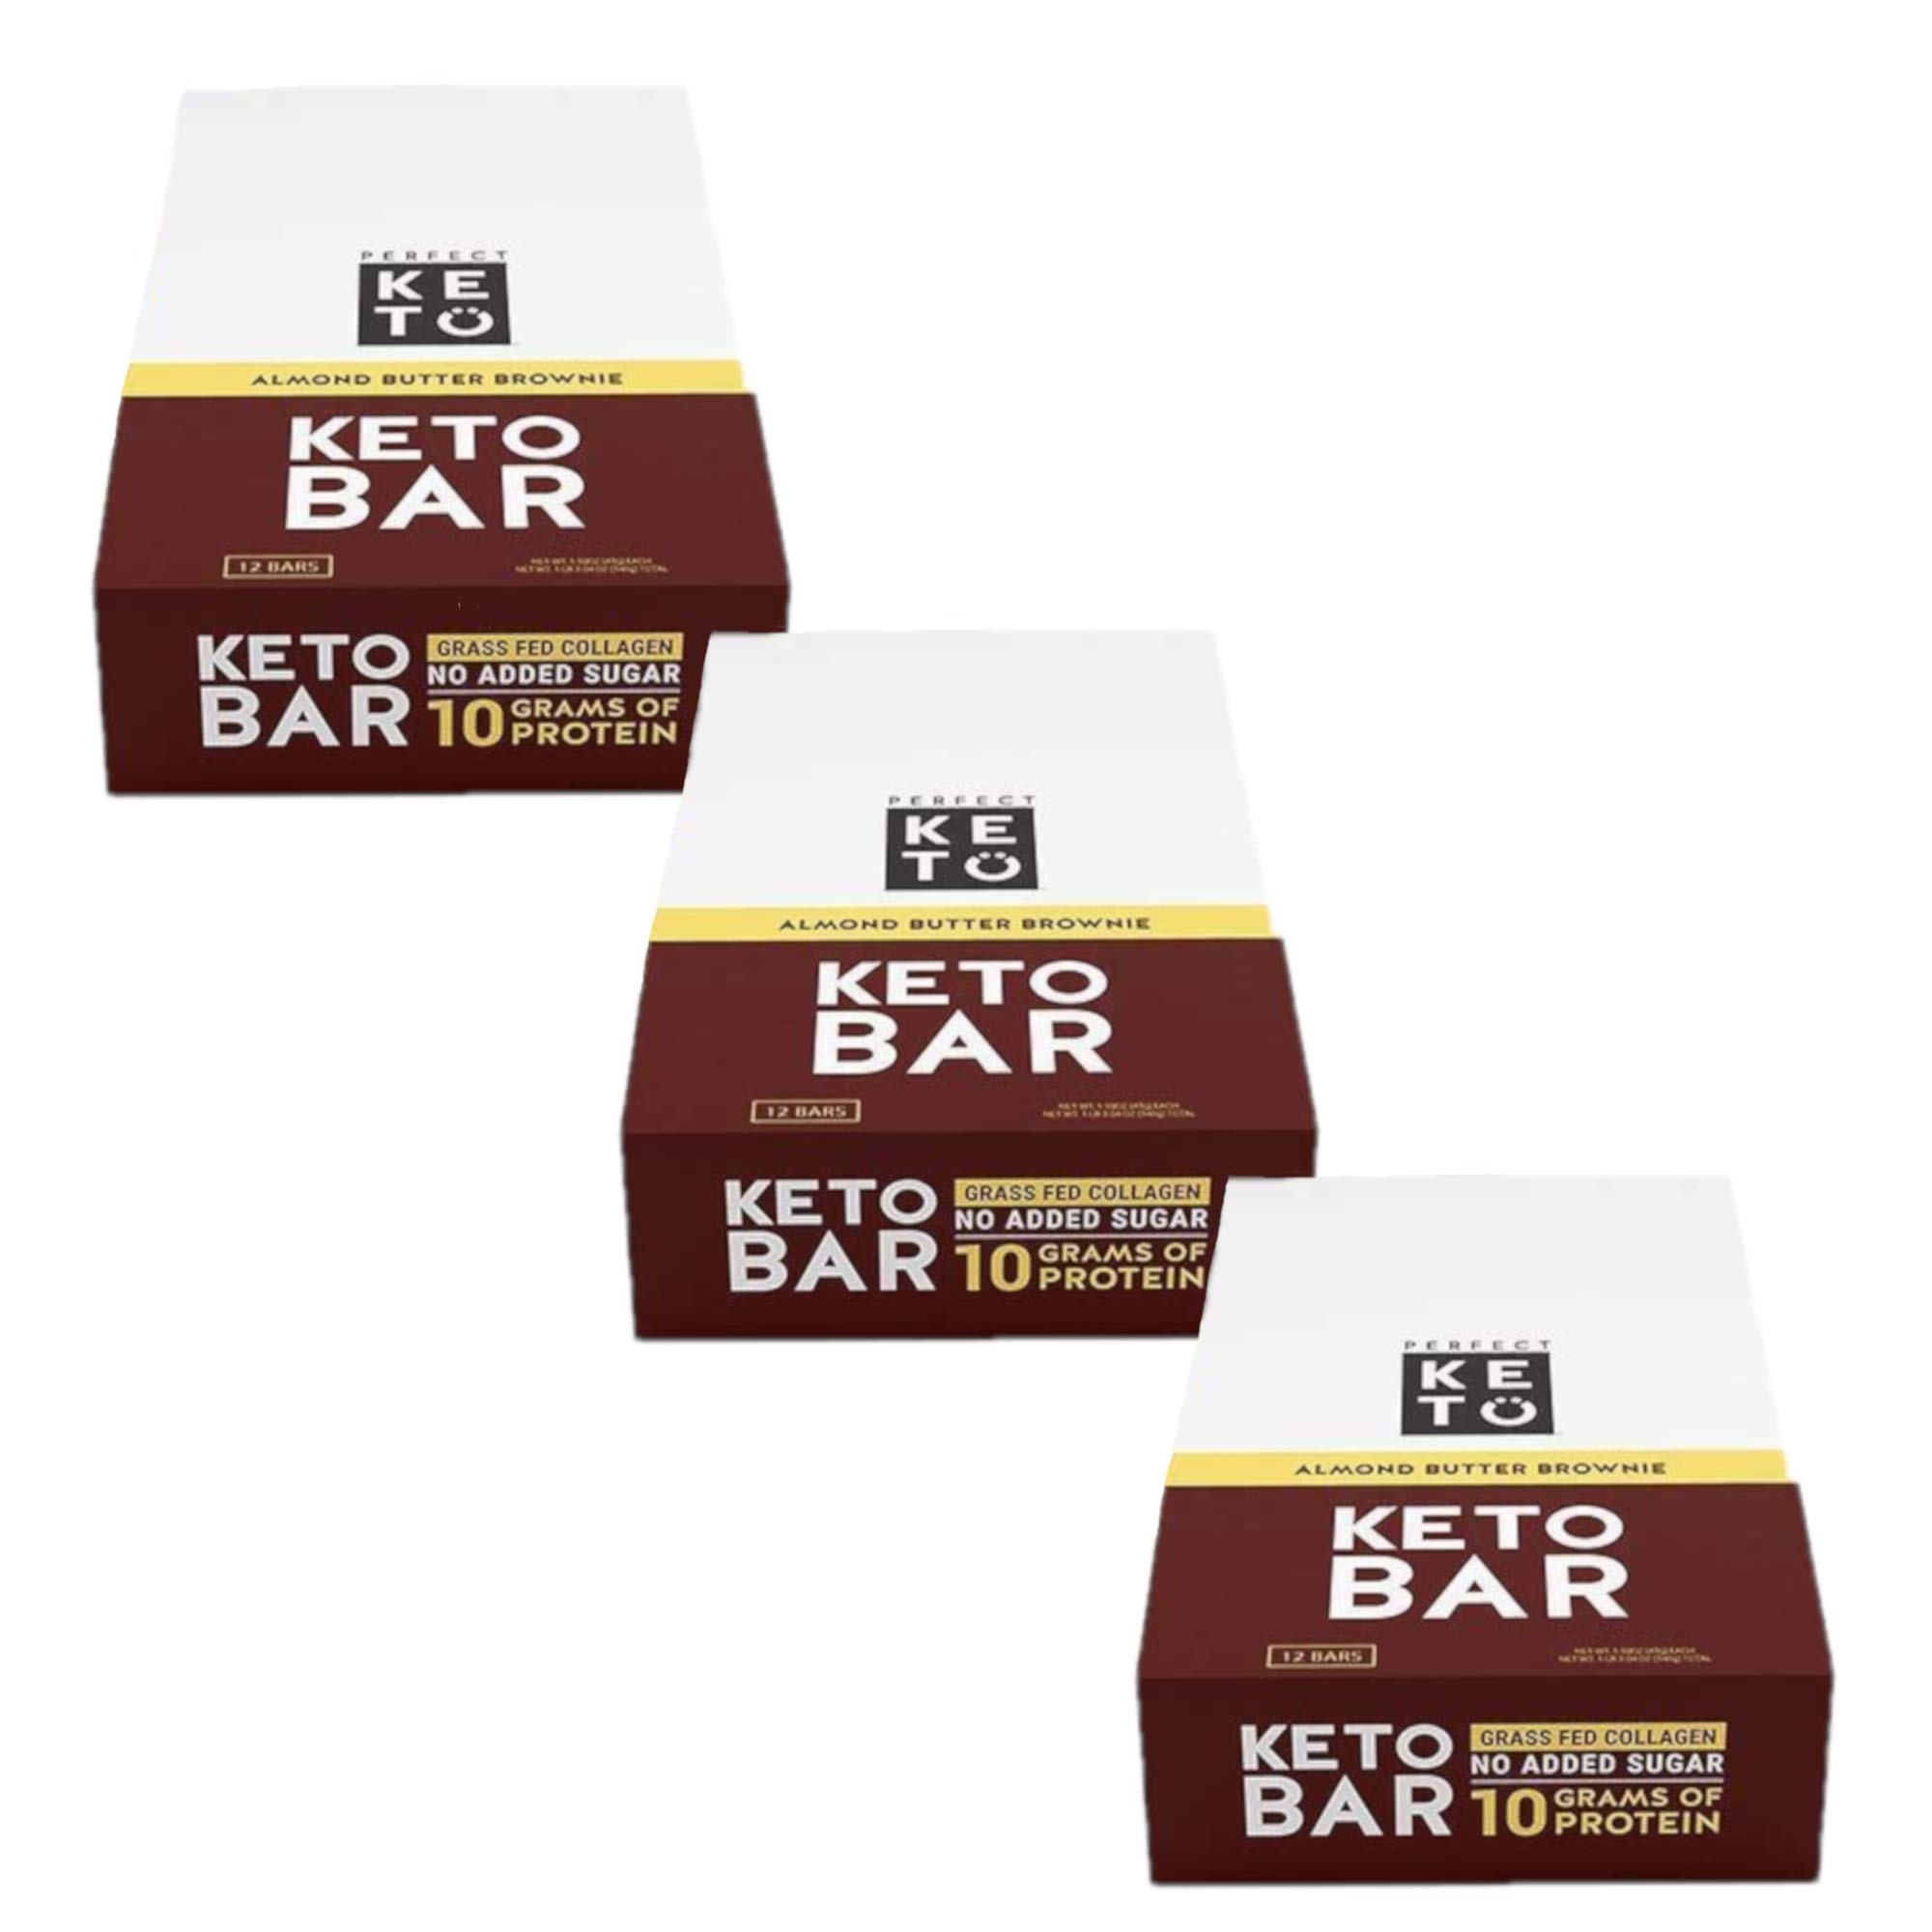 New! Perfect Keto Bar, Keto Snack (12 Count), No Added Sugar. 10g of Protein, Coconut Oil, and Collagen, with a Touch of Sea Salt and Stevia. (3 Boxes, Almond Butter)